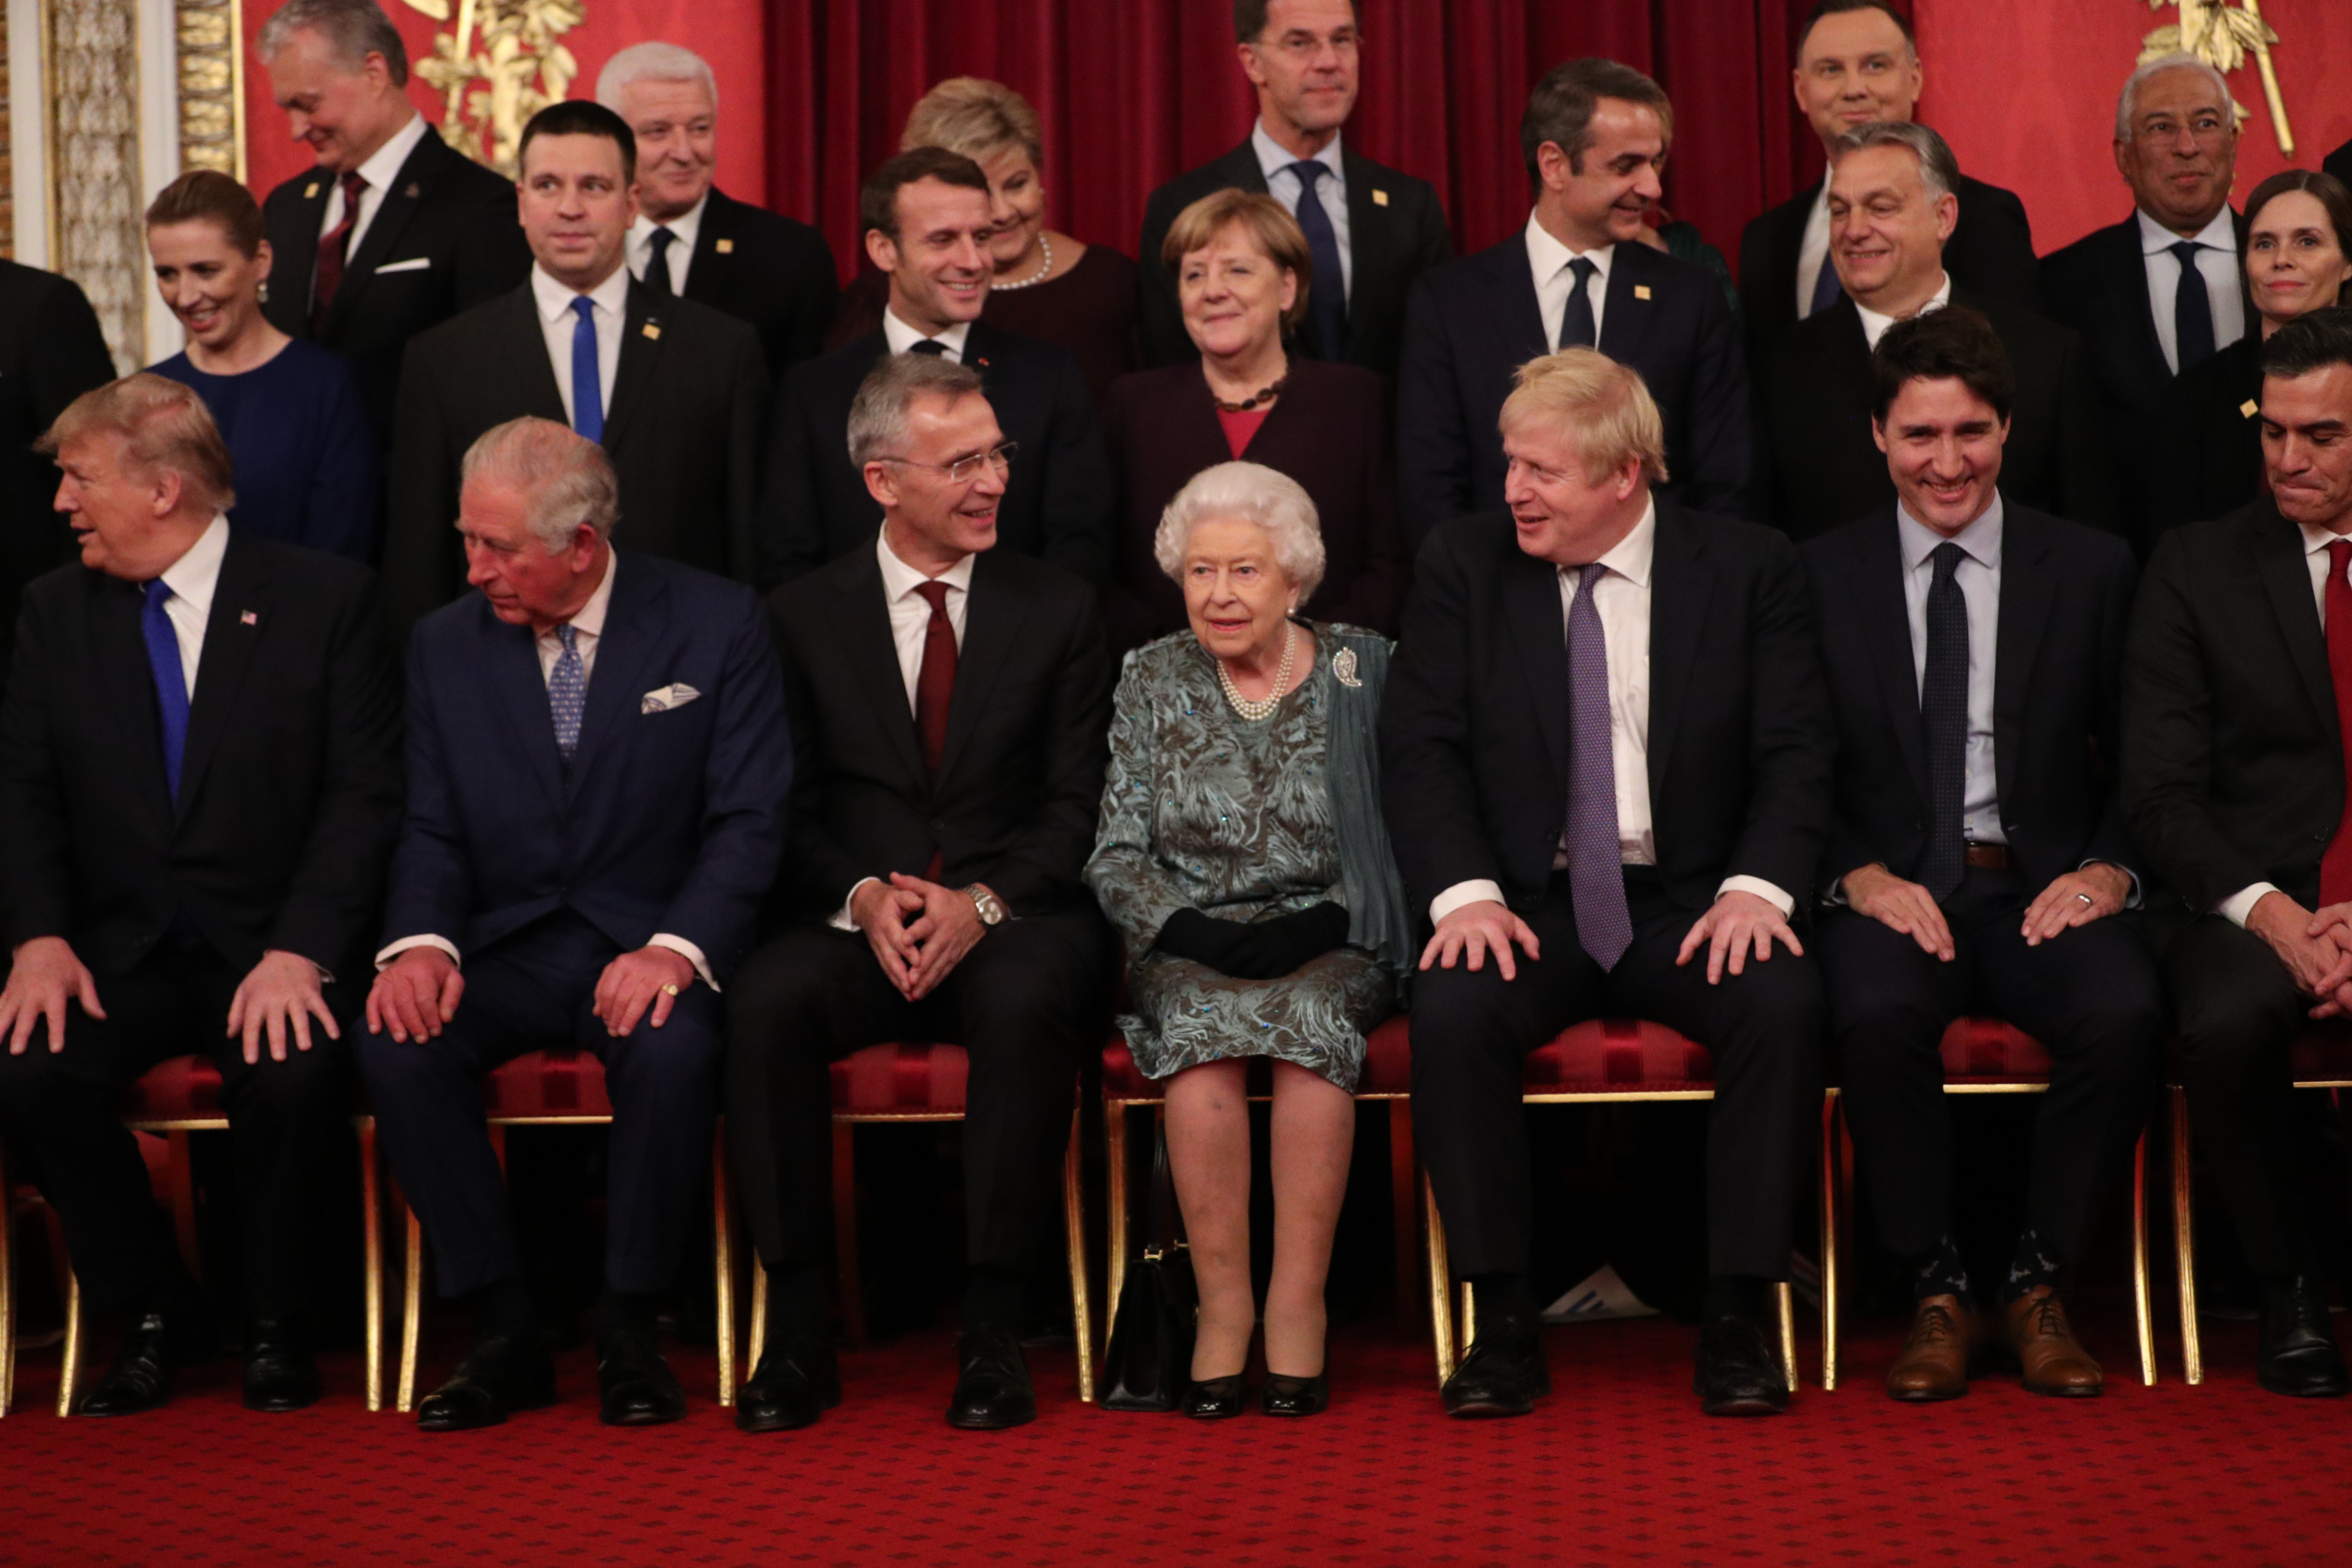 Queen Elizabeth II and Prime Minister Boris Johnson joins other Nato leaders for a group photograph Chancellor of Germany, Angela Merkel, talks to Queen Elizabeth II during a reception at Buckingham Palace, London, as they gathered to mark 70 years of the alliance.